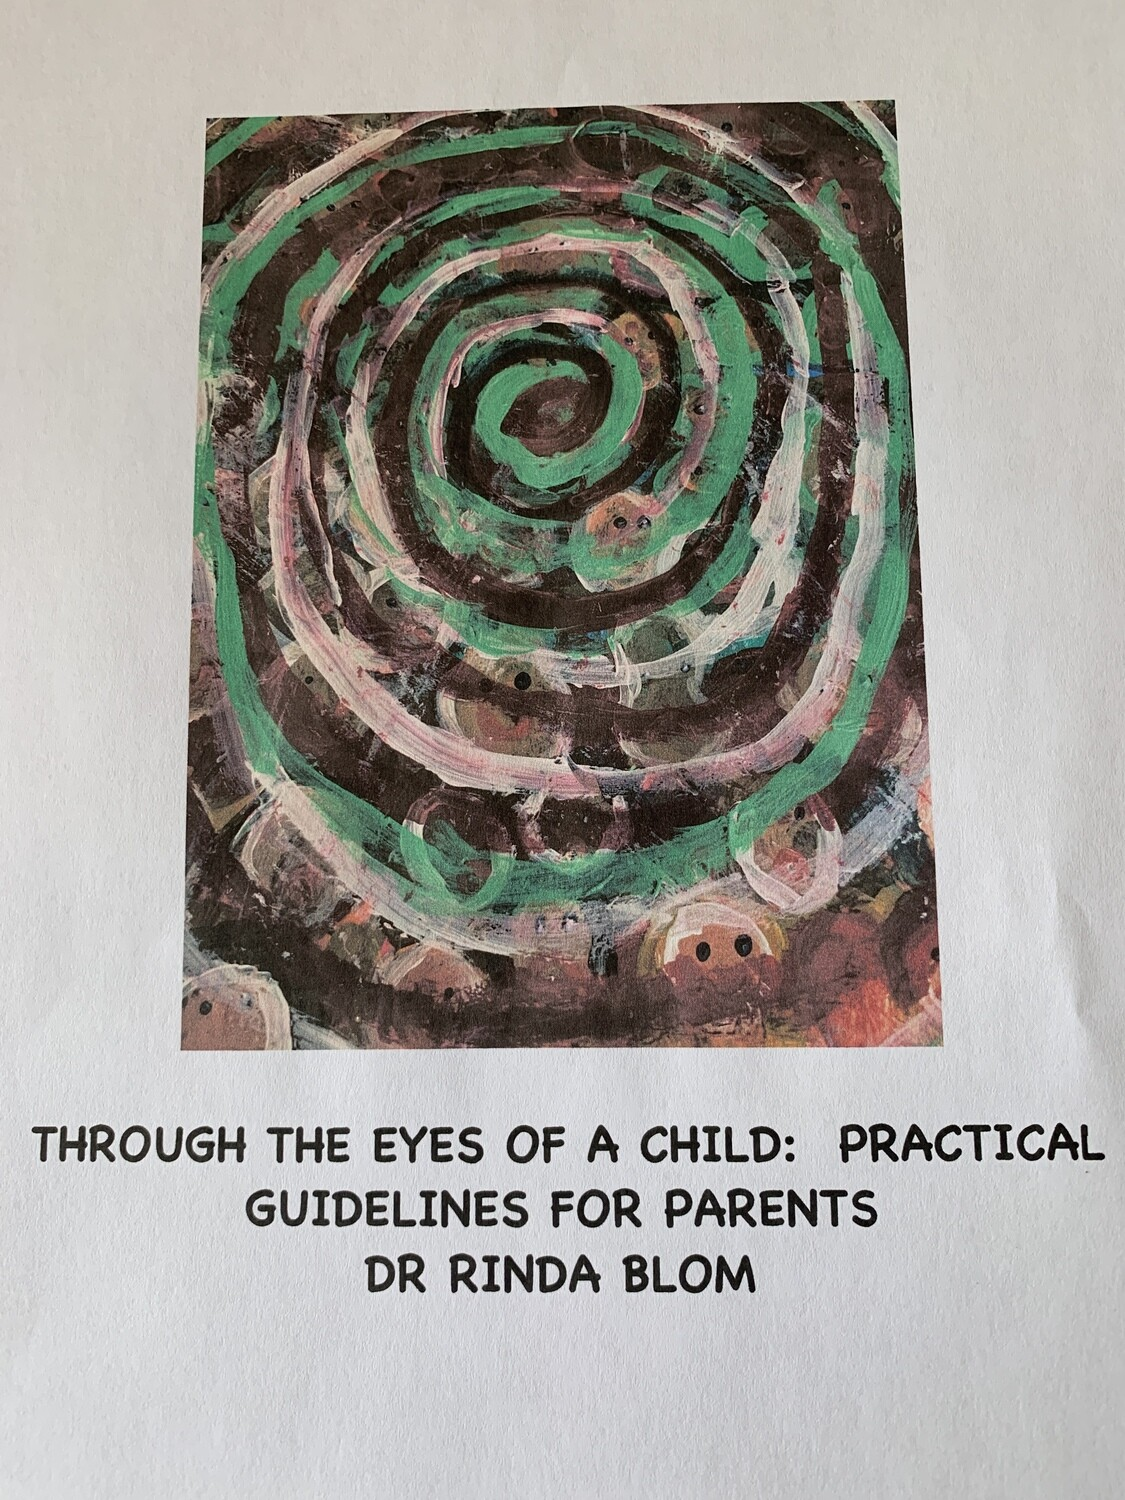 Through the eyes of a child - a practical manual for parents e-book